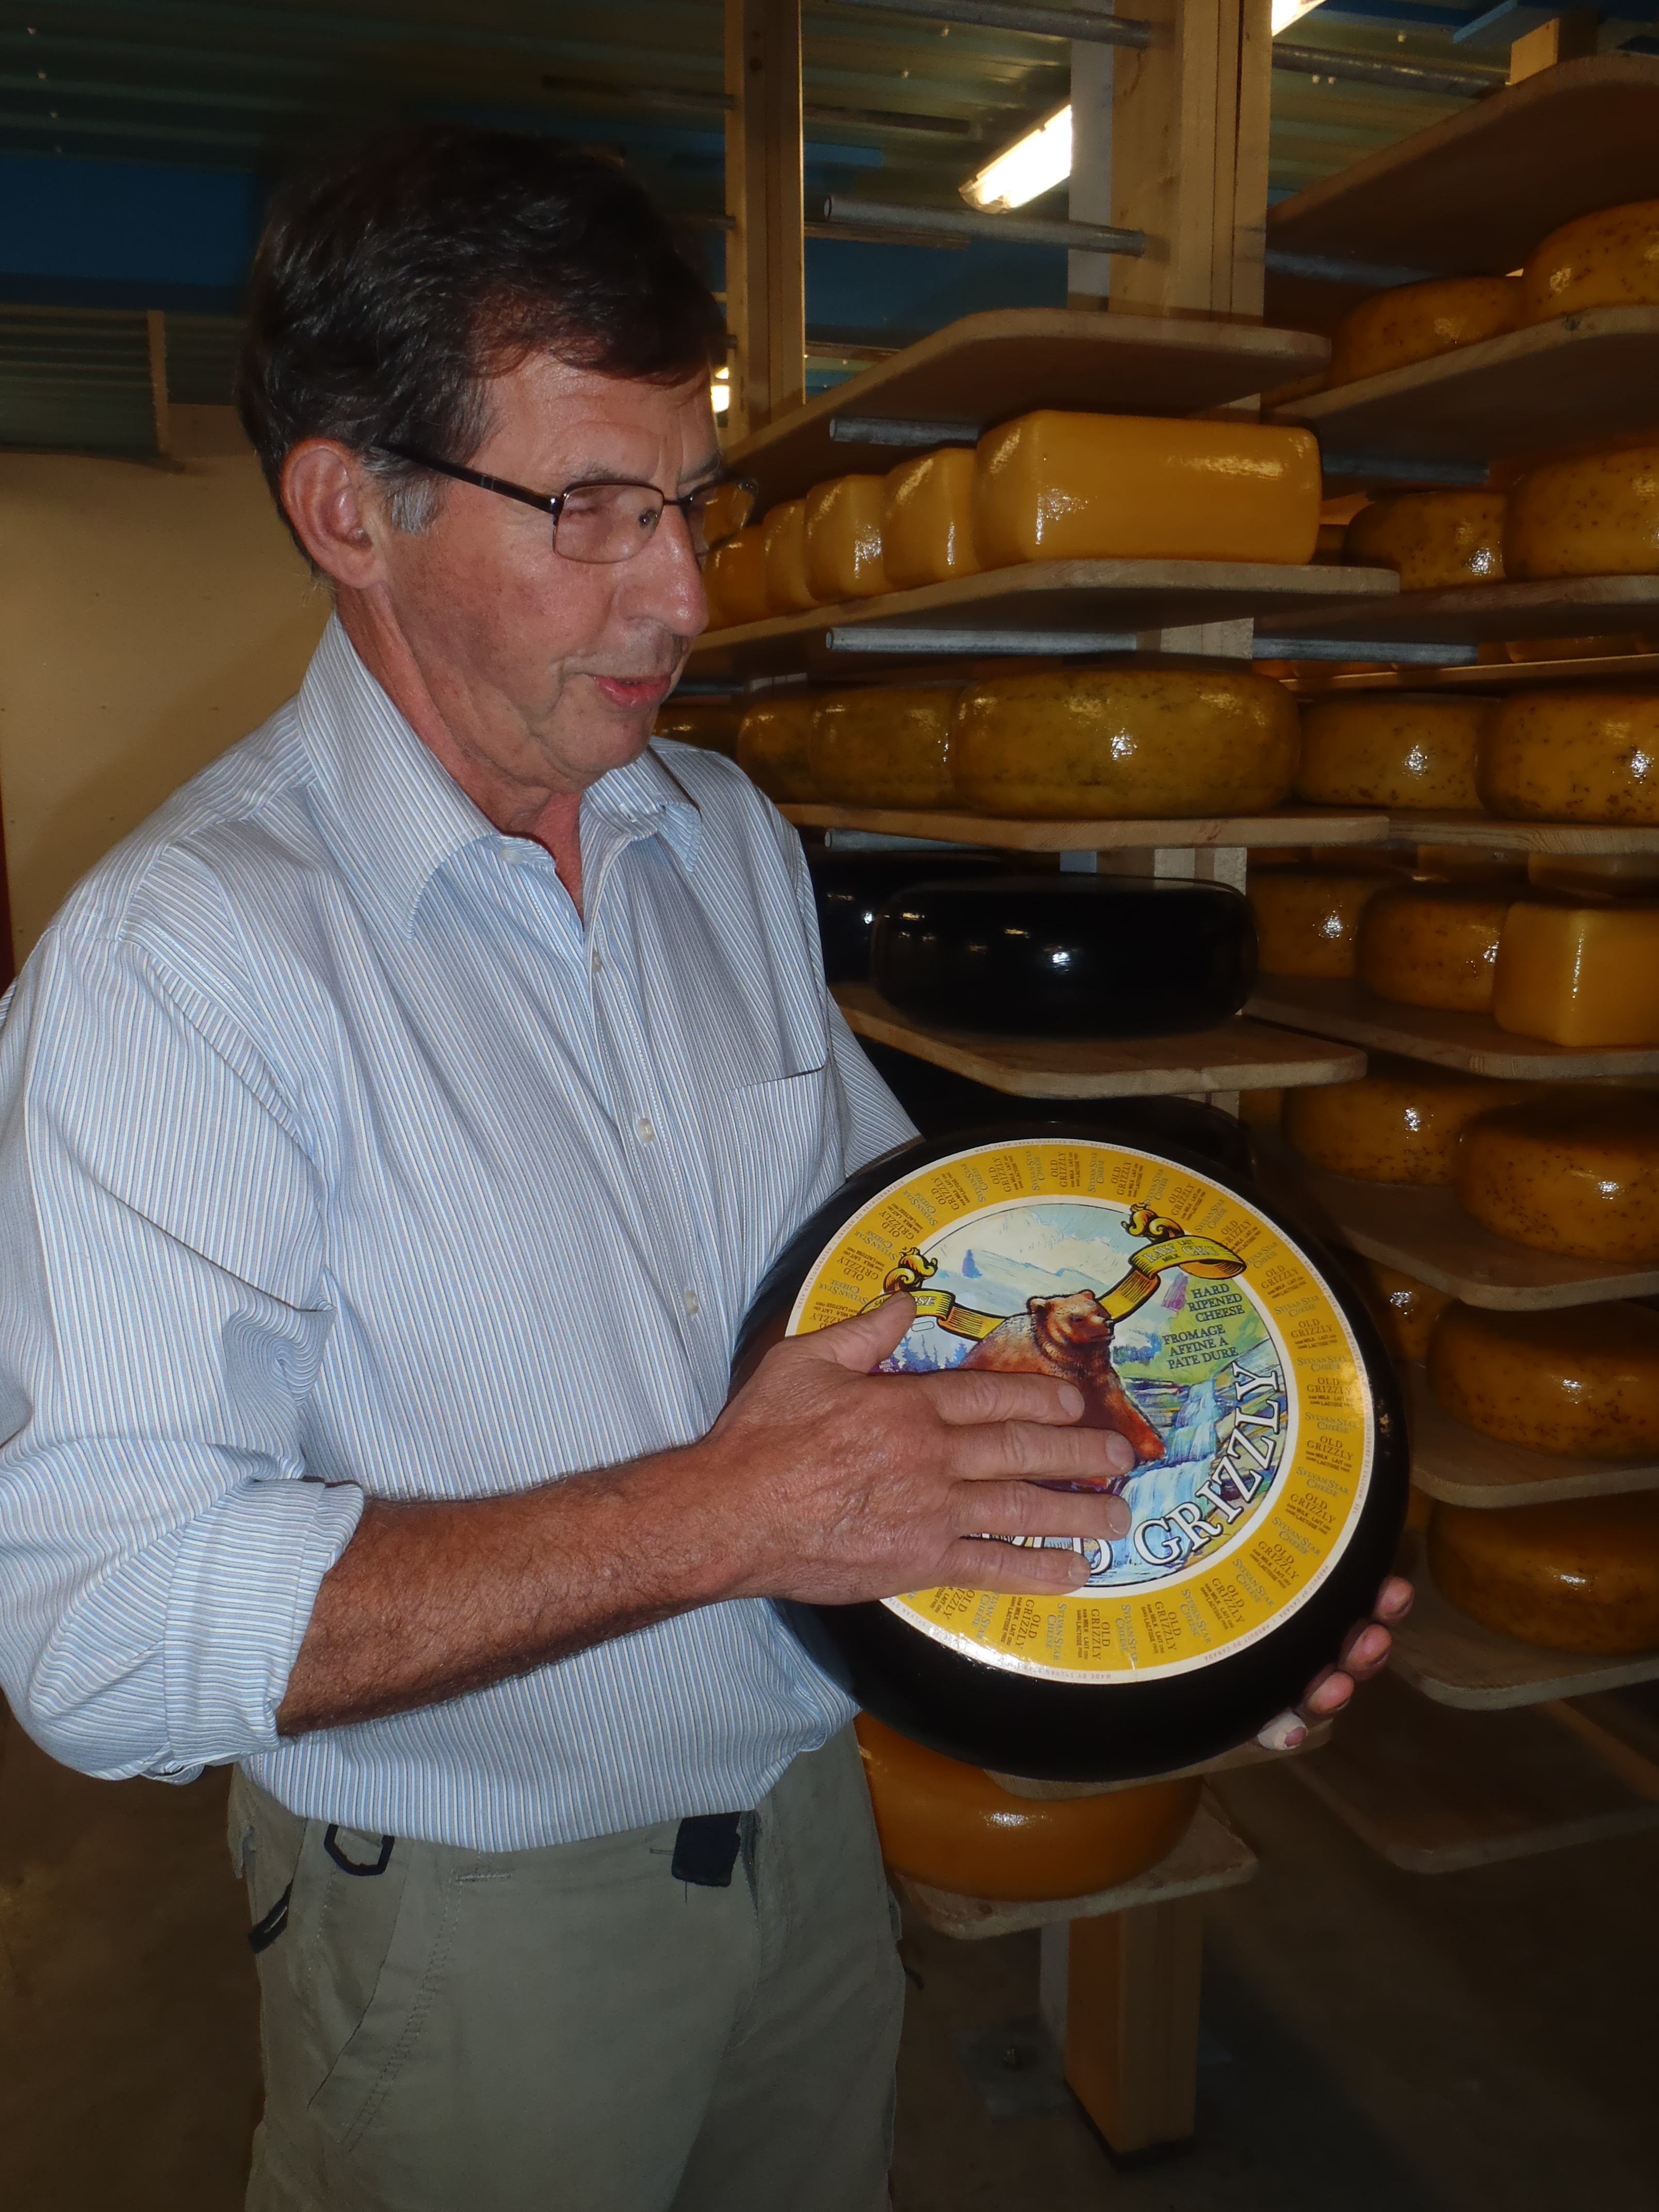 Sylvan Star owner Jan with a wheel of Grizzly aged gouda